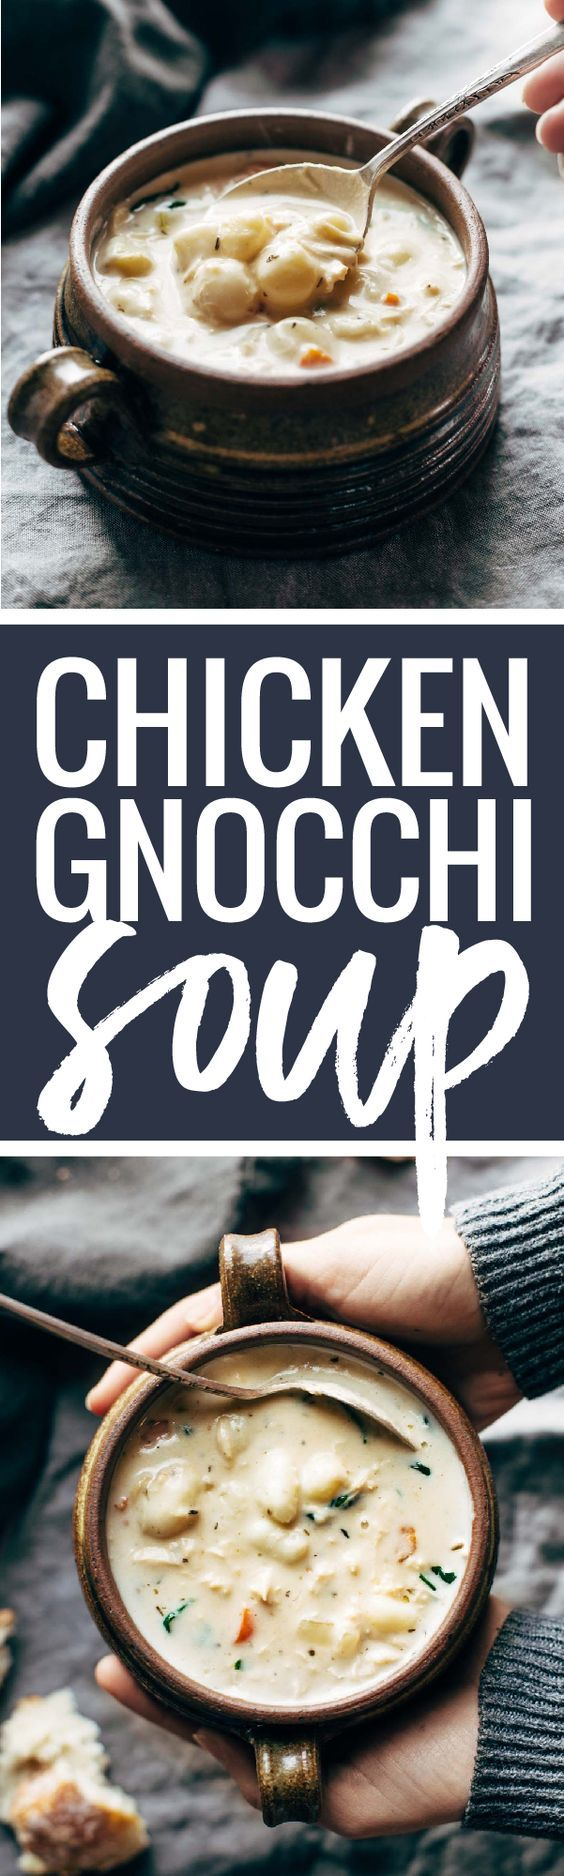 Crockpot Chicken Gnocchi Soup - easy, comforting, lots of vegetables, no heavy cream. A total crowd-pleaser! | pinchofyum.com